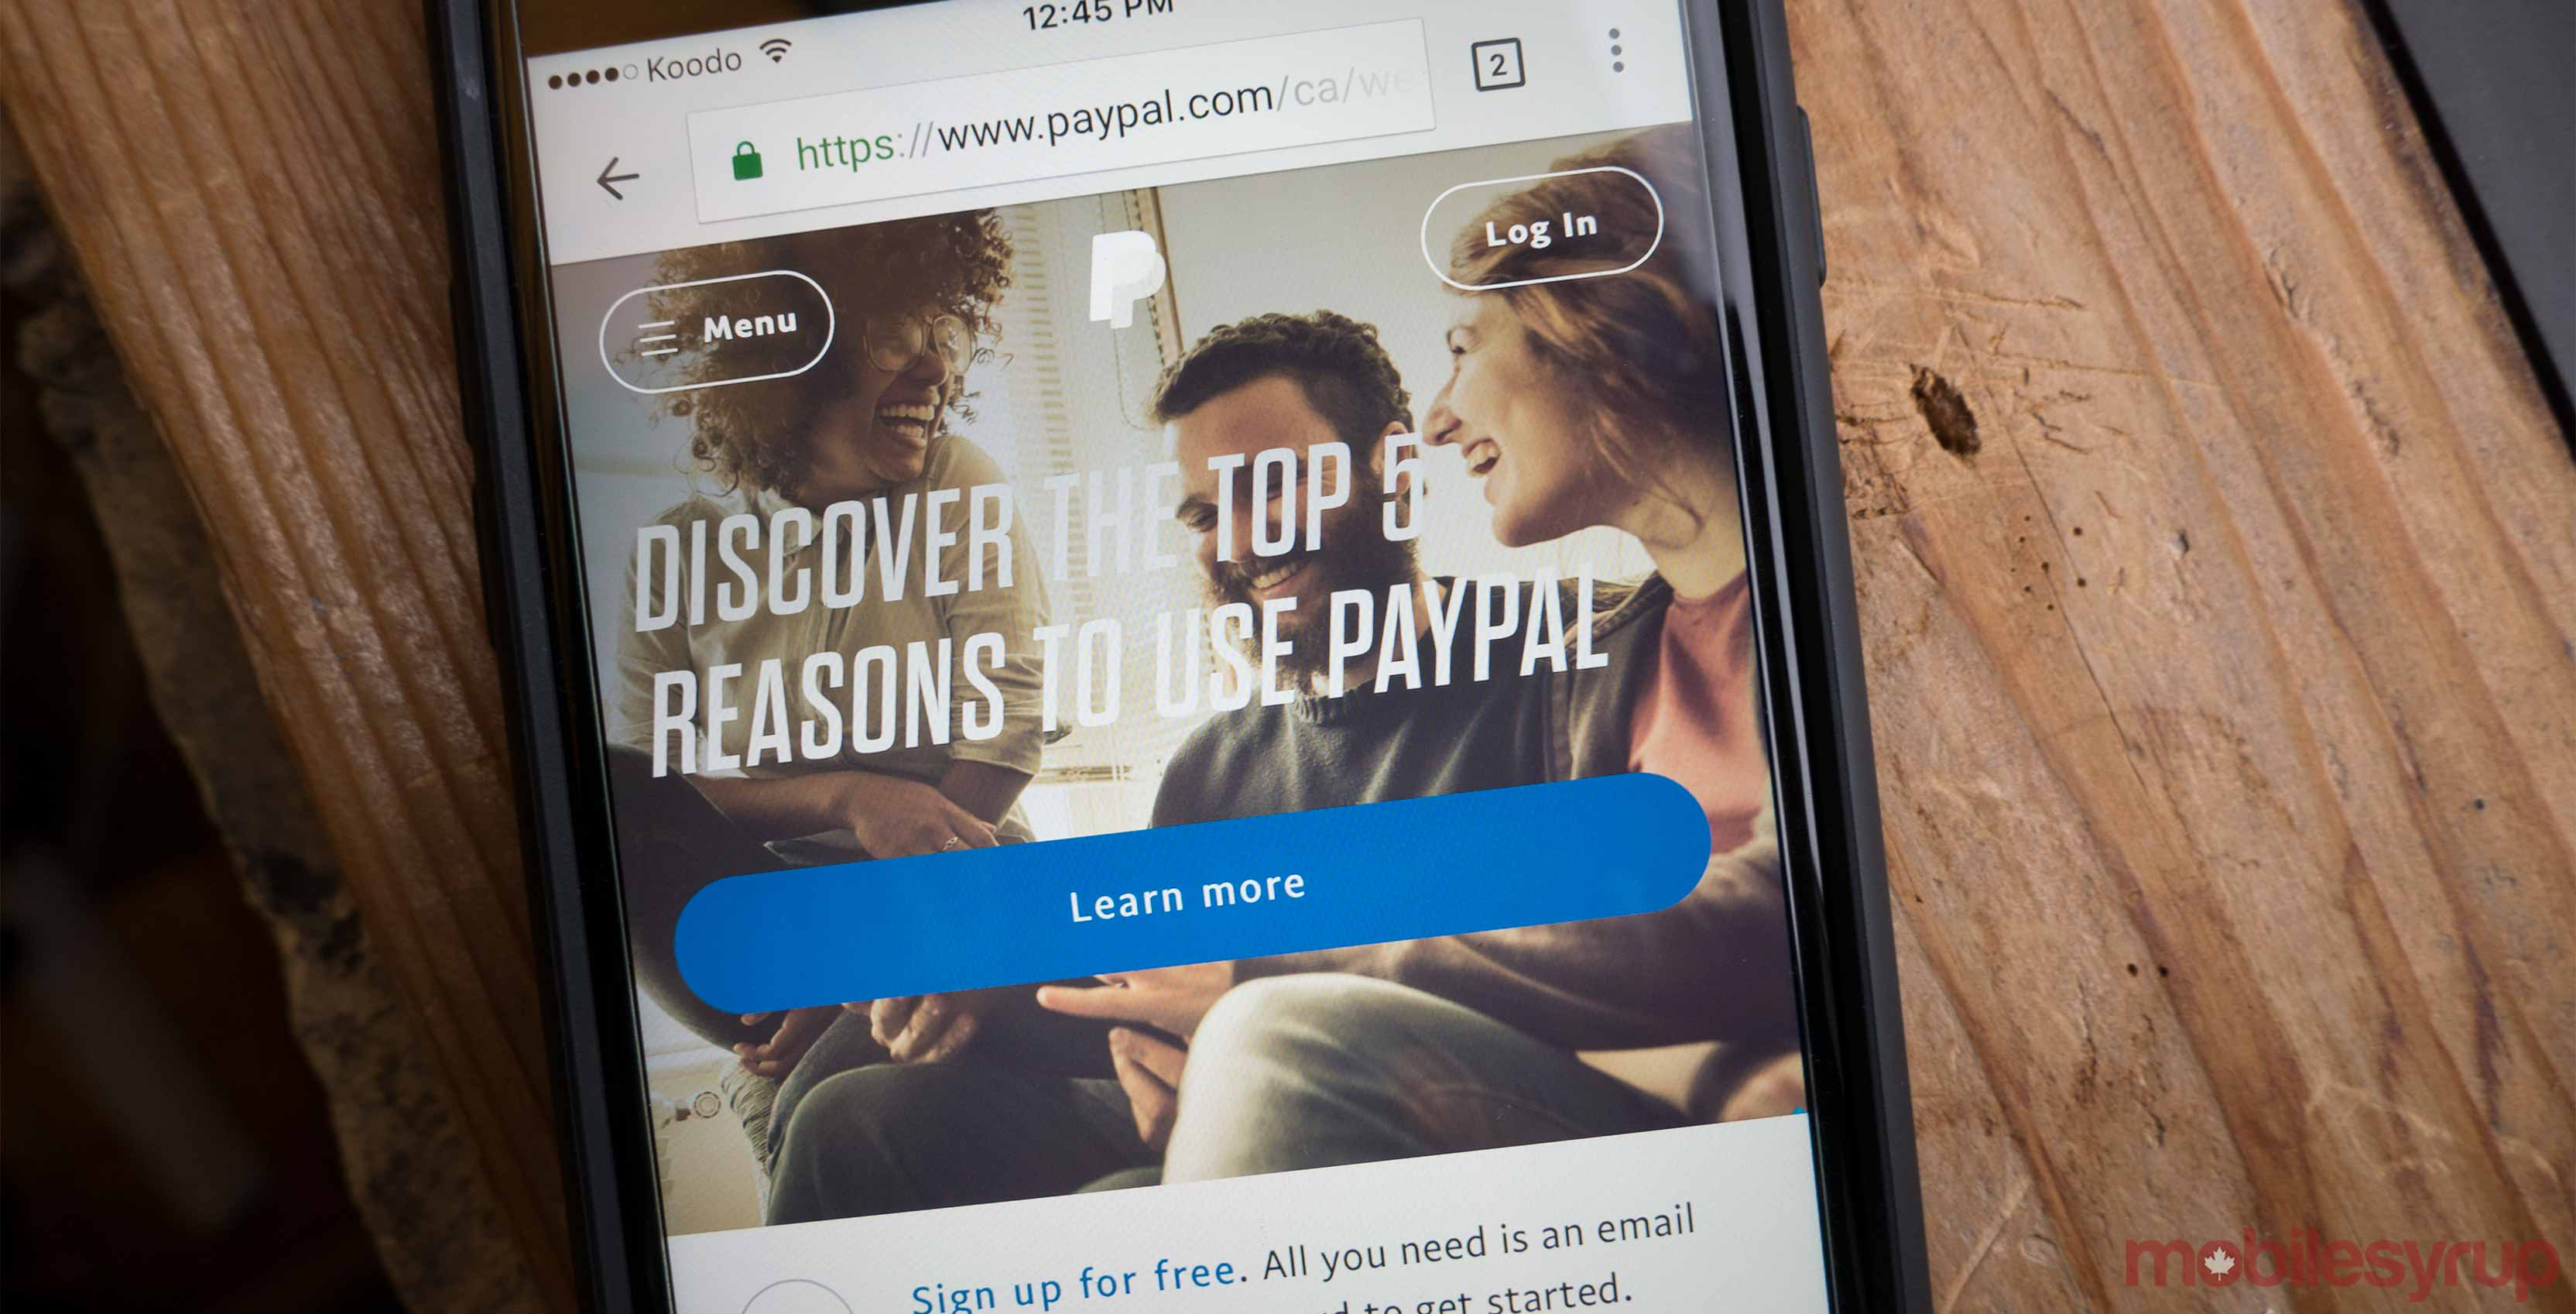 PayPal acquires TIO networks for $304 million